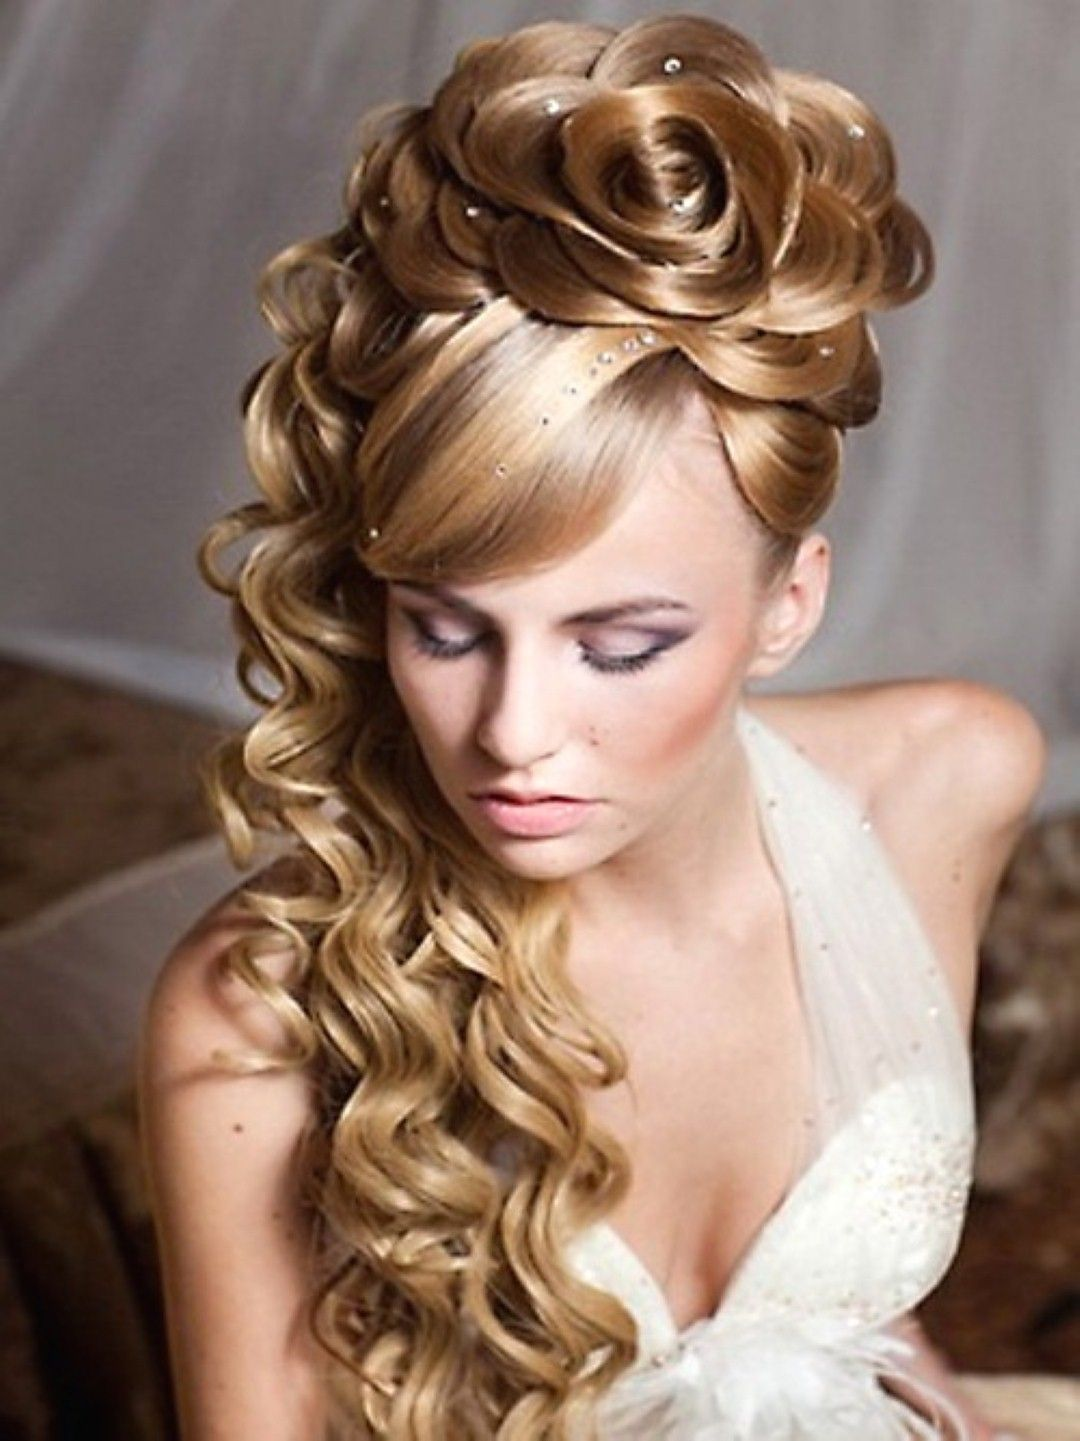 Magnificent Romantic Hairstyle For Long Hair And For Women On Pinterest Short Hairstyles For Black Women Fulllsitofus